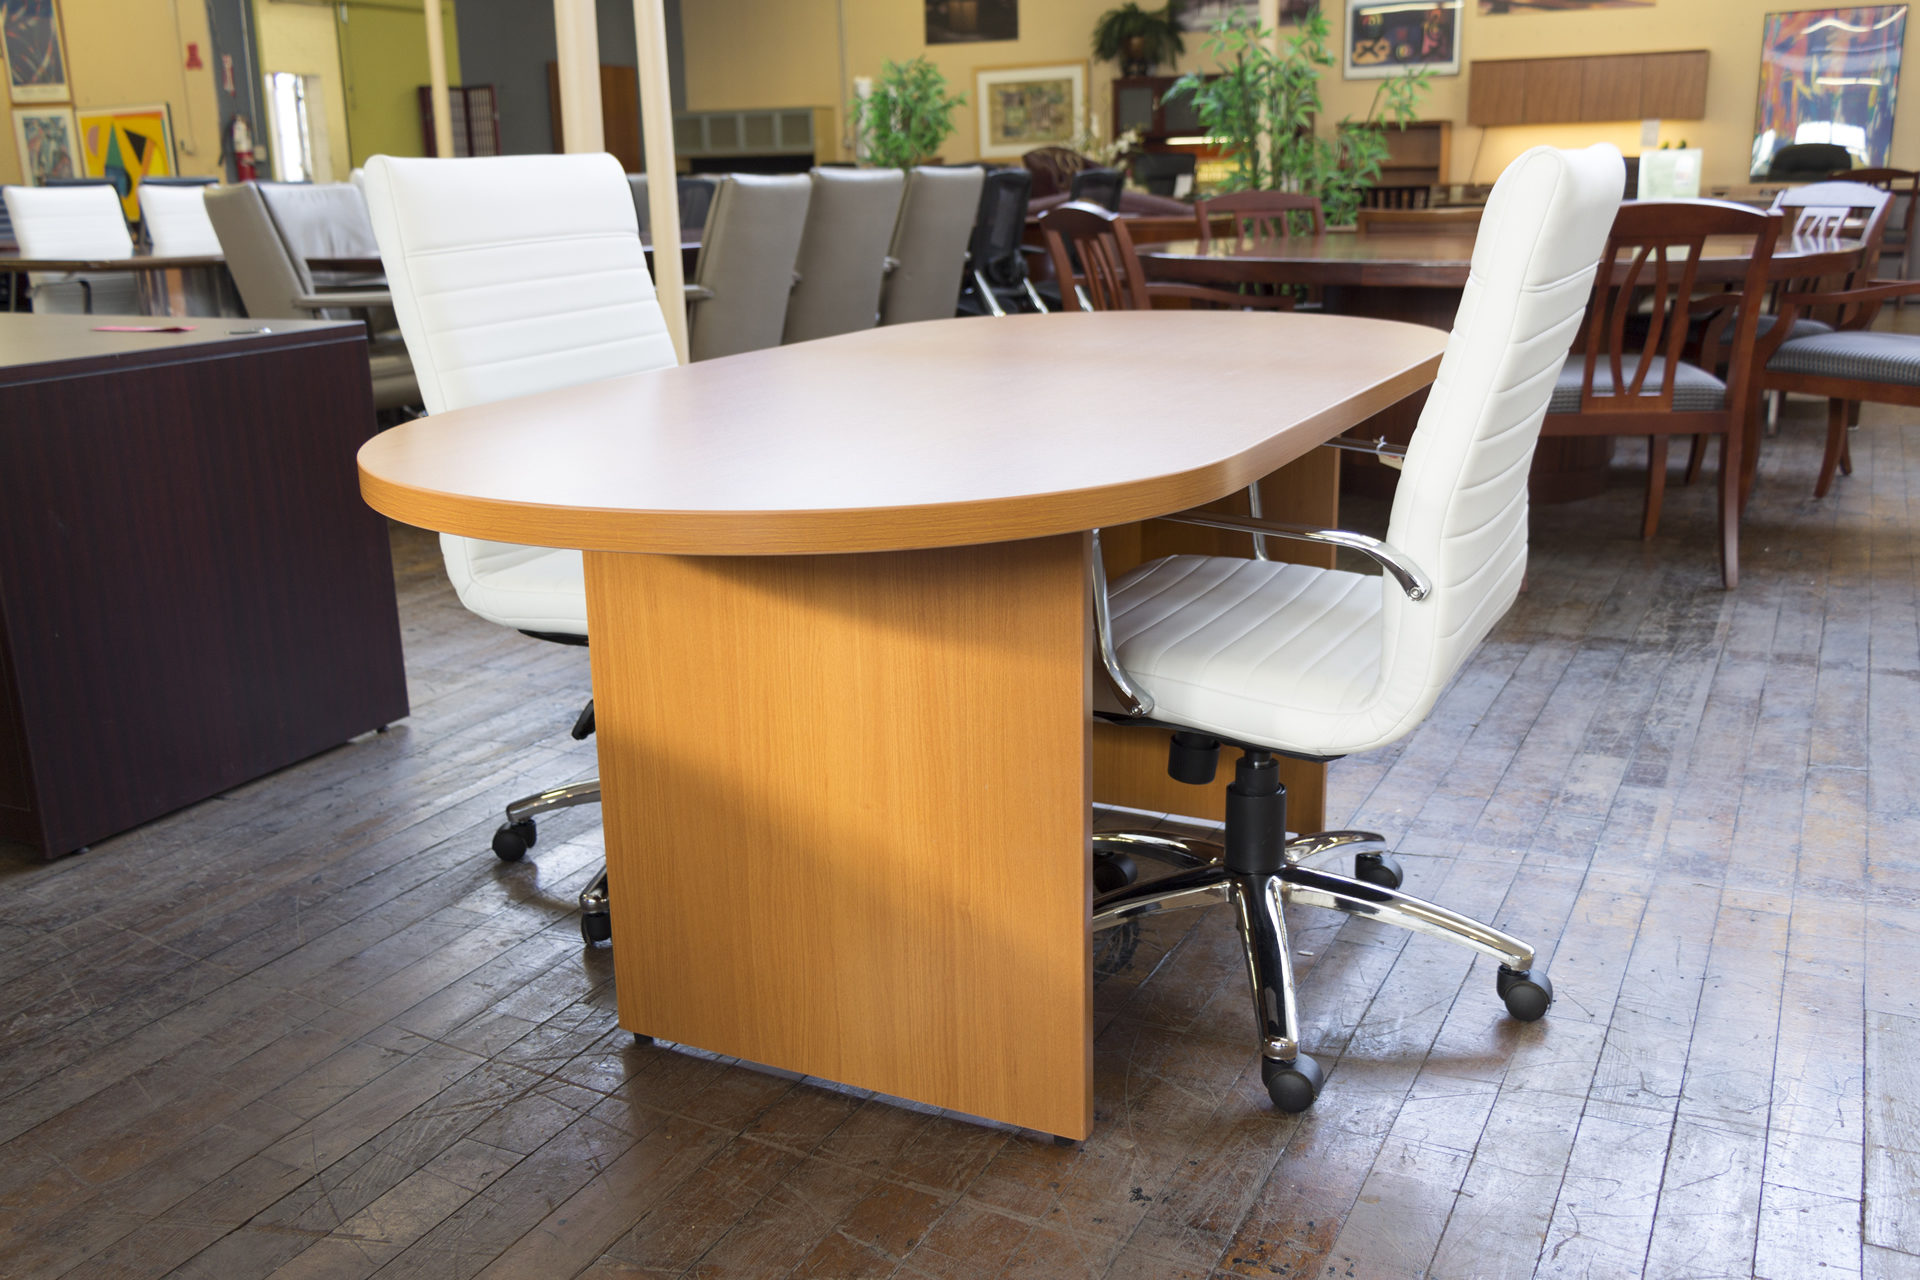 peartreeofficefurniture_peartreeofficefurniture_mg_3109.jpg